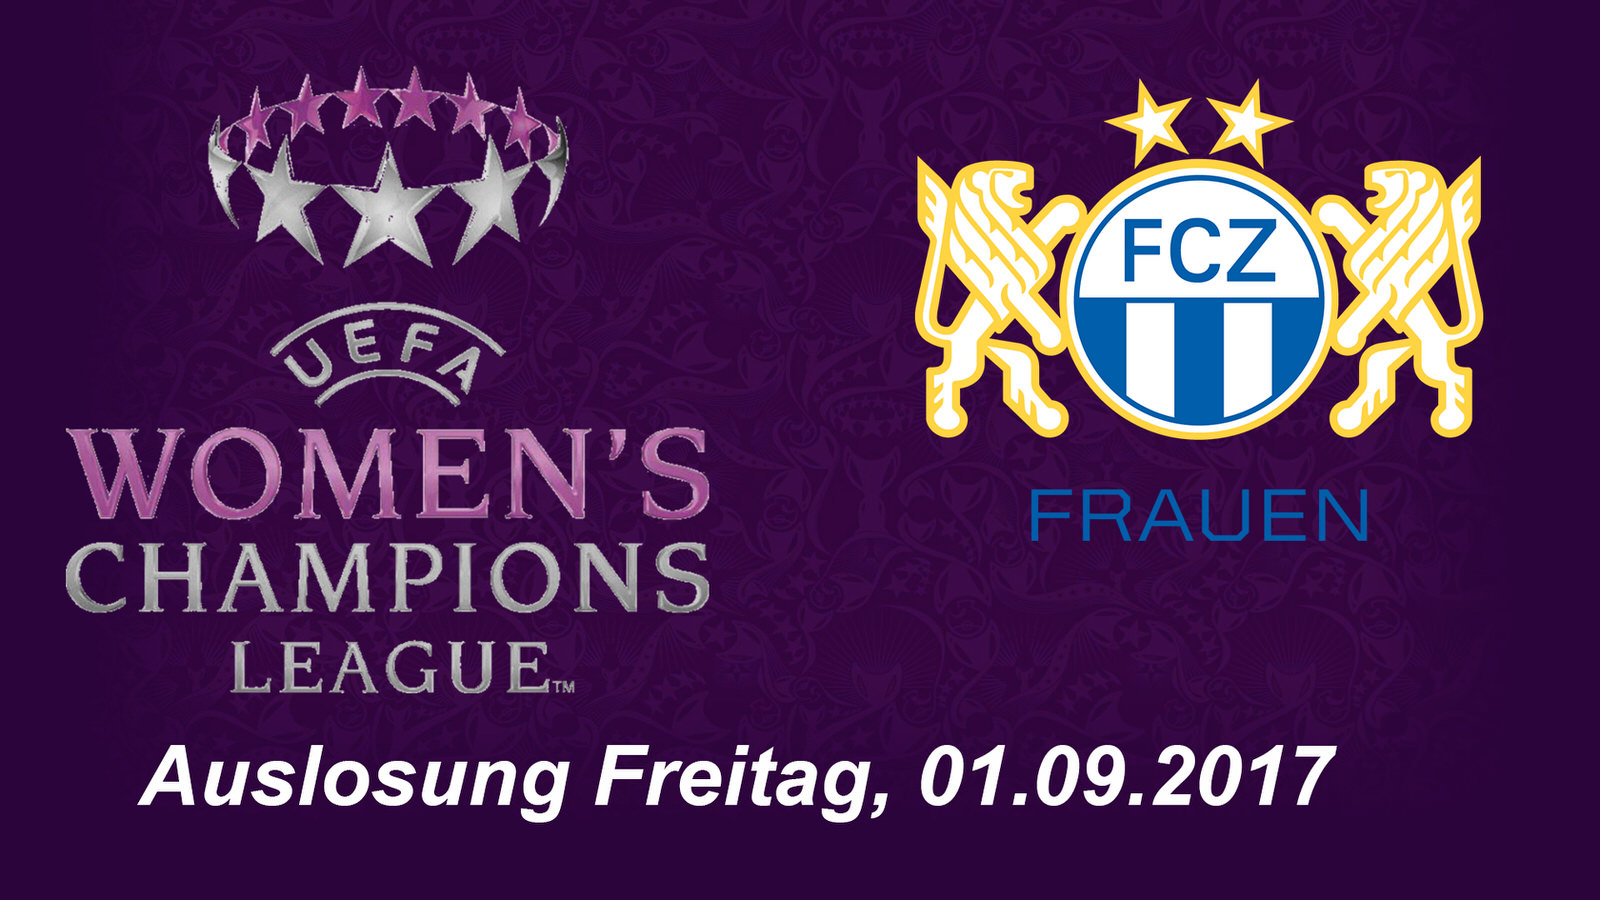 FCZ Frauen Champions League